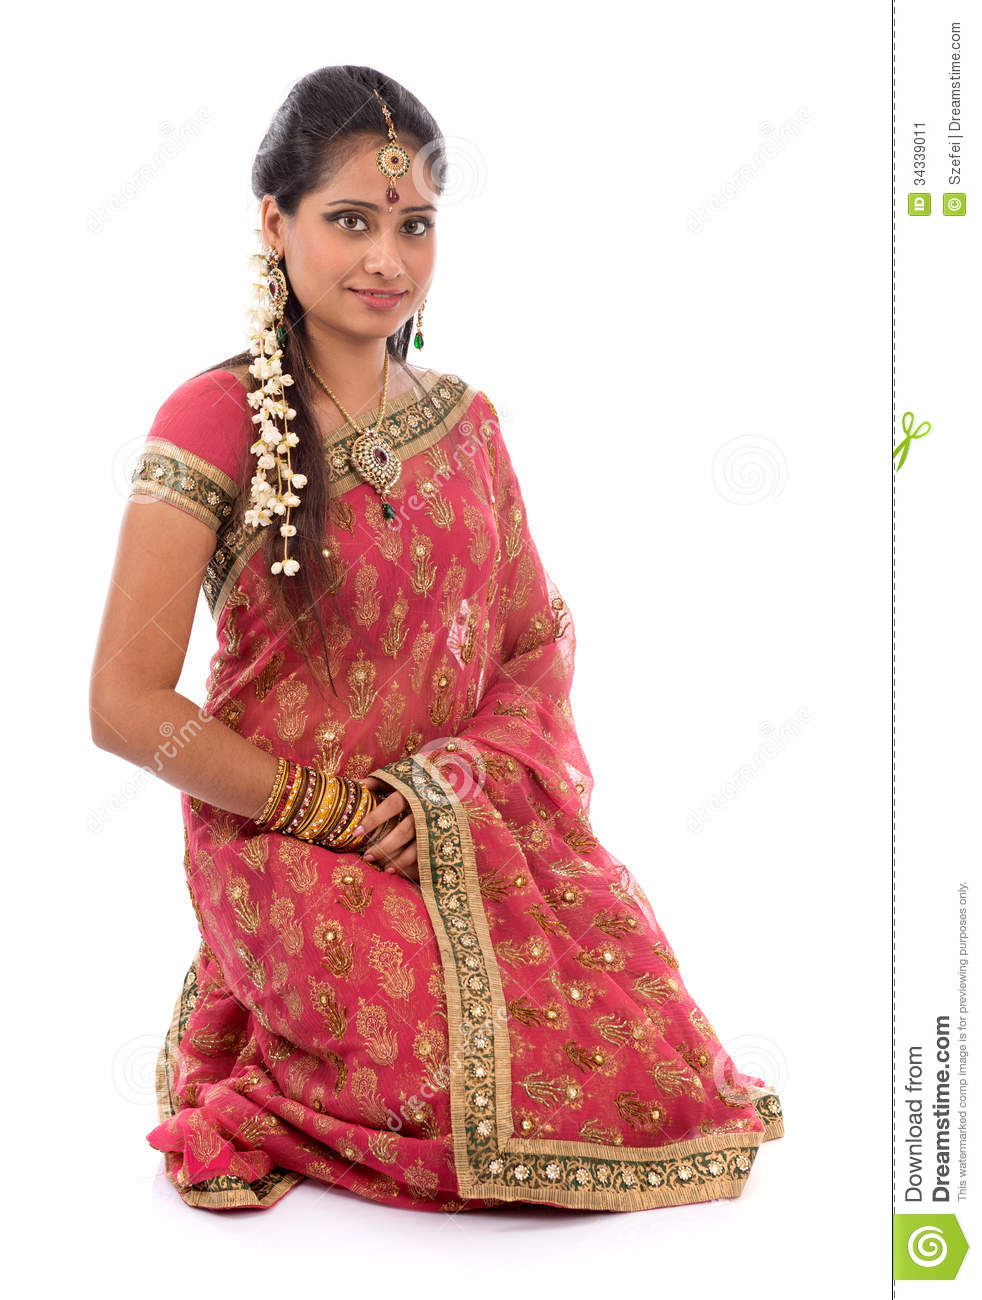 724f916800 Portrait of full body traditional Indian girl in sari clothes smiling,  kneeling on floor isolated on white background.